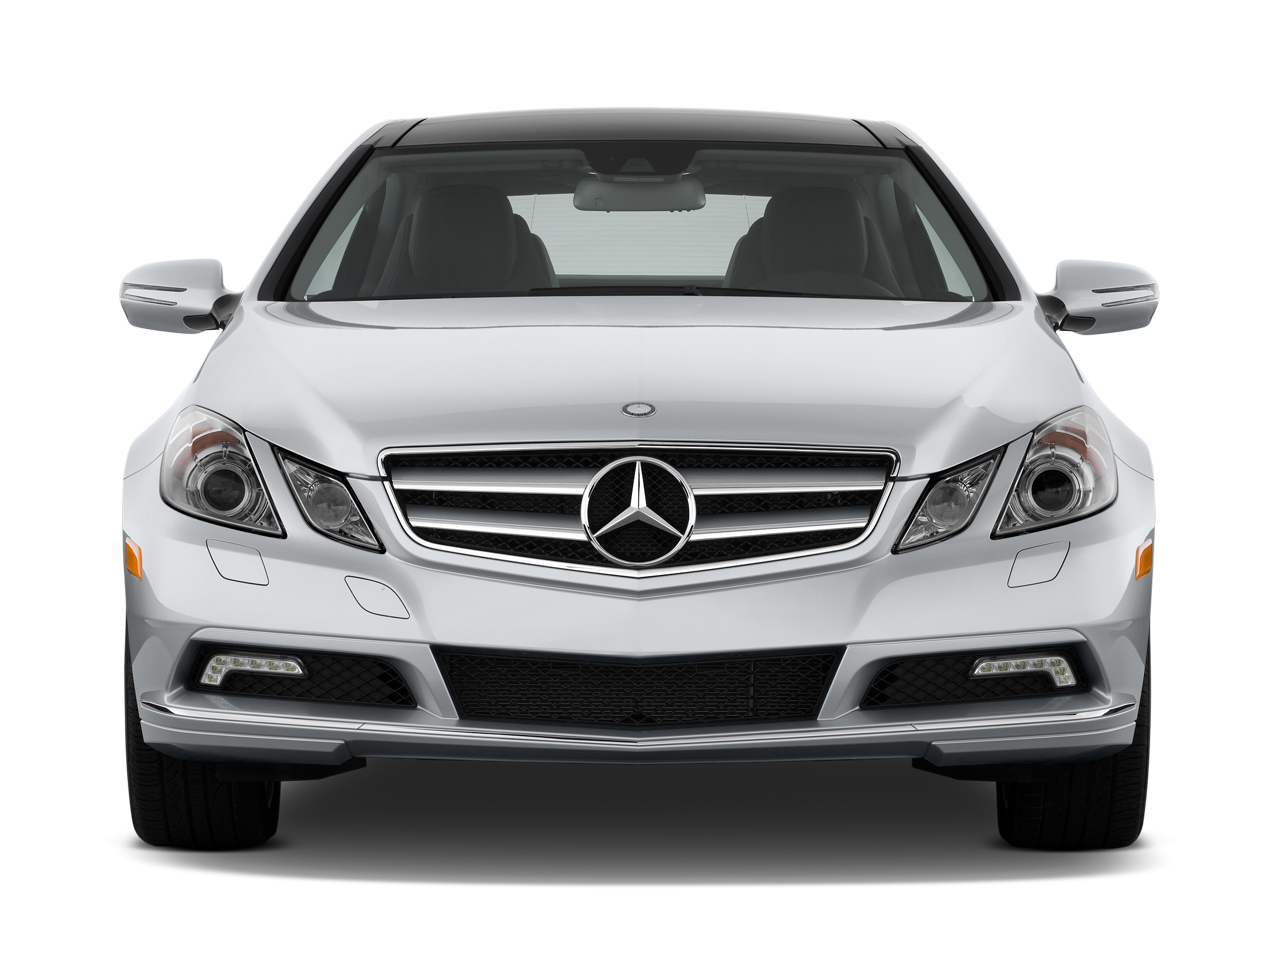 2011 mercedes benz e class diesel others recalled for. Black Bedroom Furniture Sets. Home Design Ideas